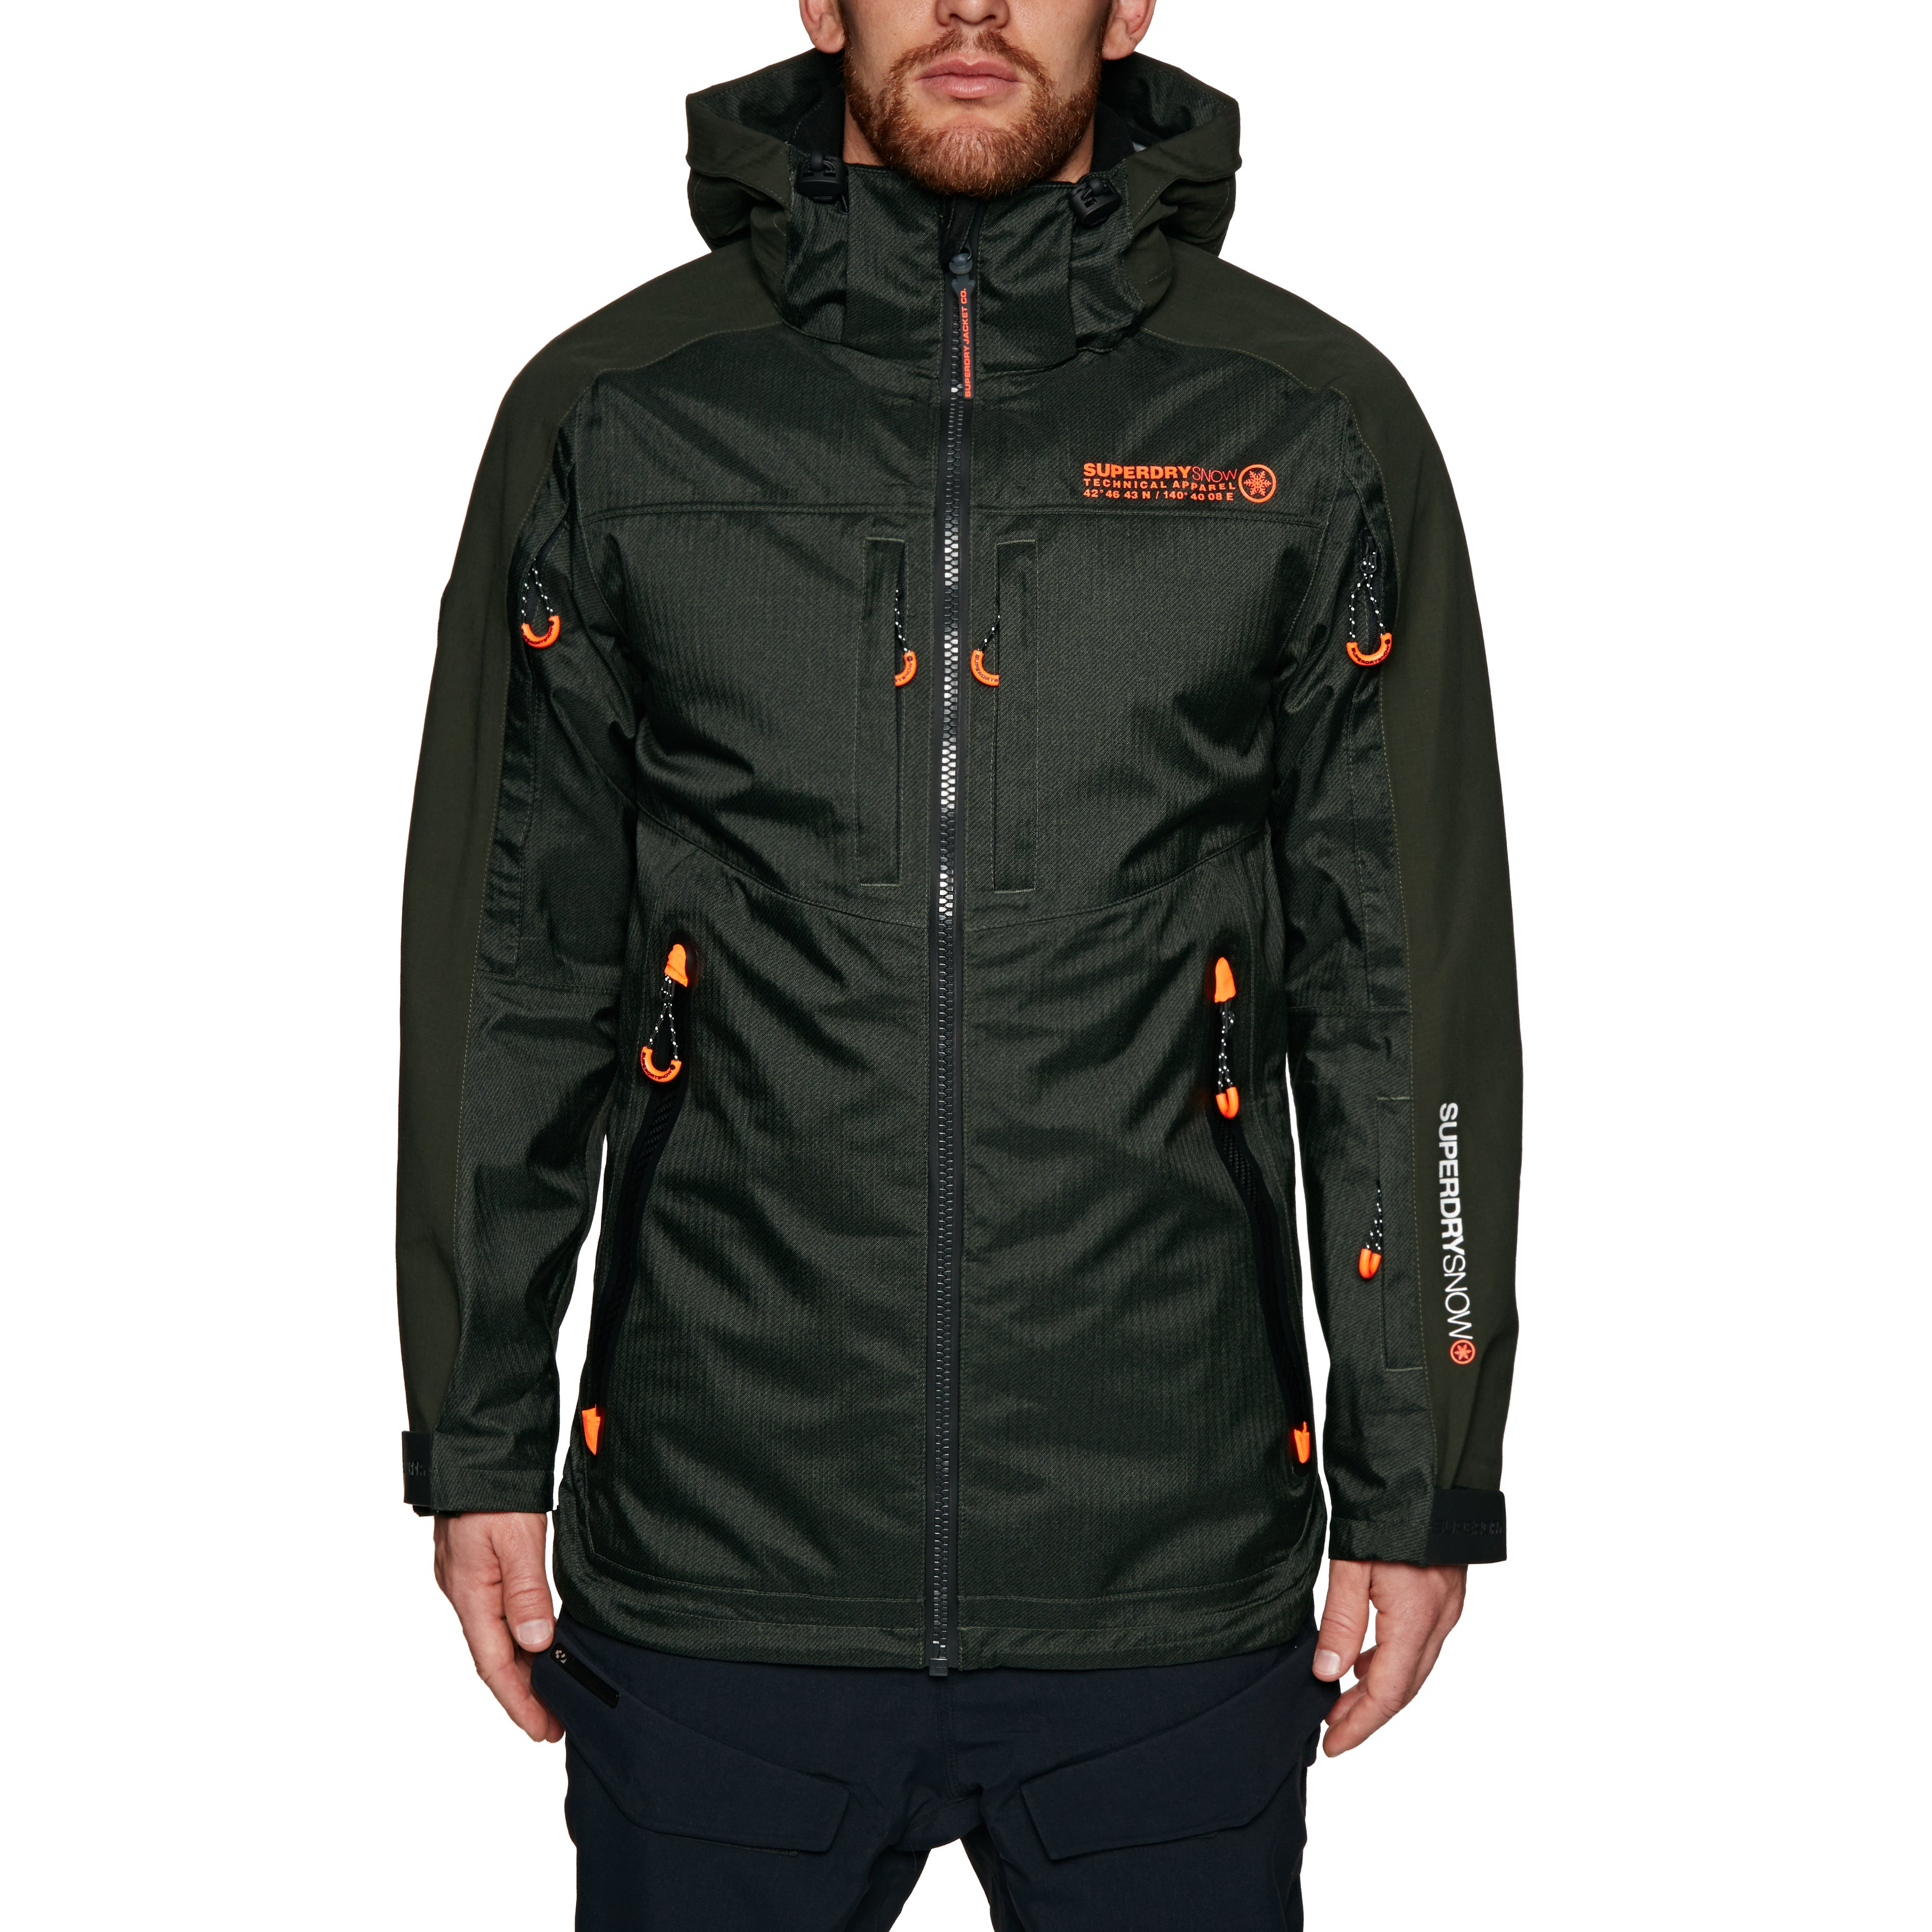 Superdry Piste Rescue Multi Snow Jacket - Army Green